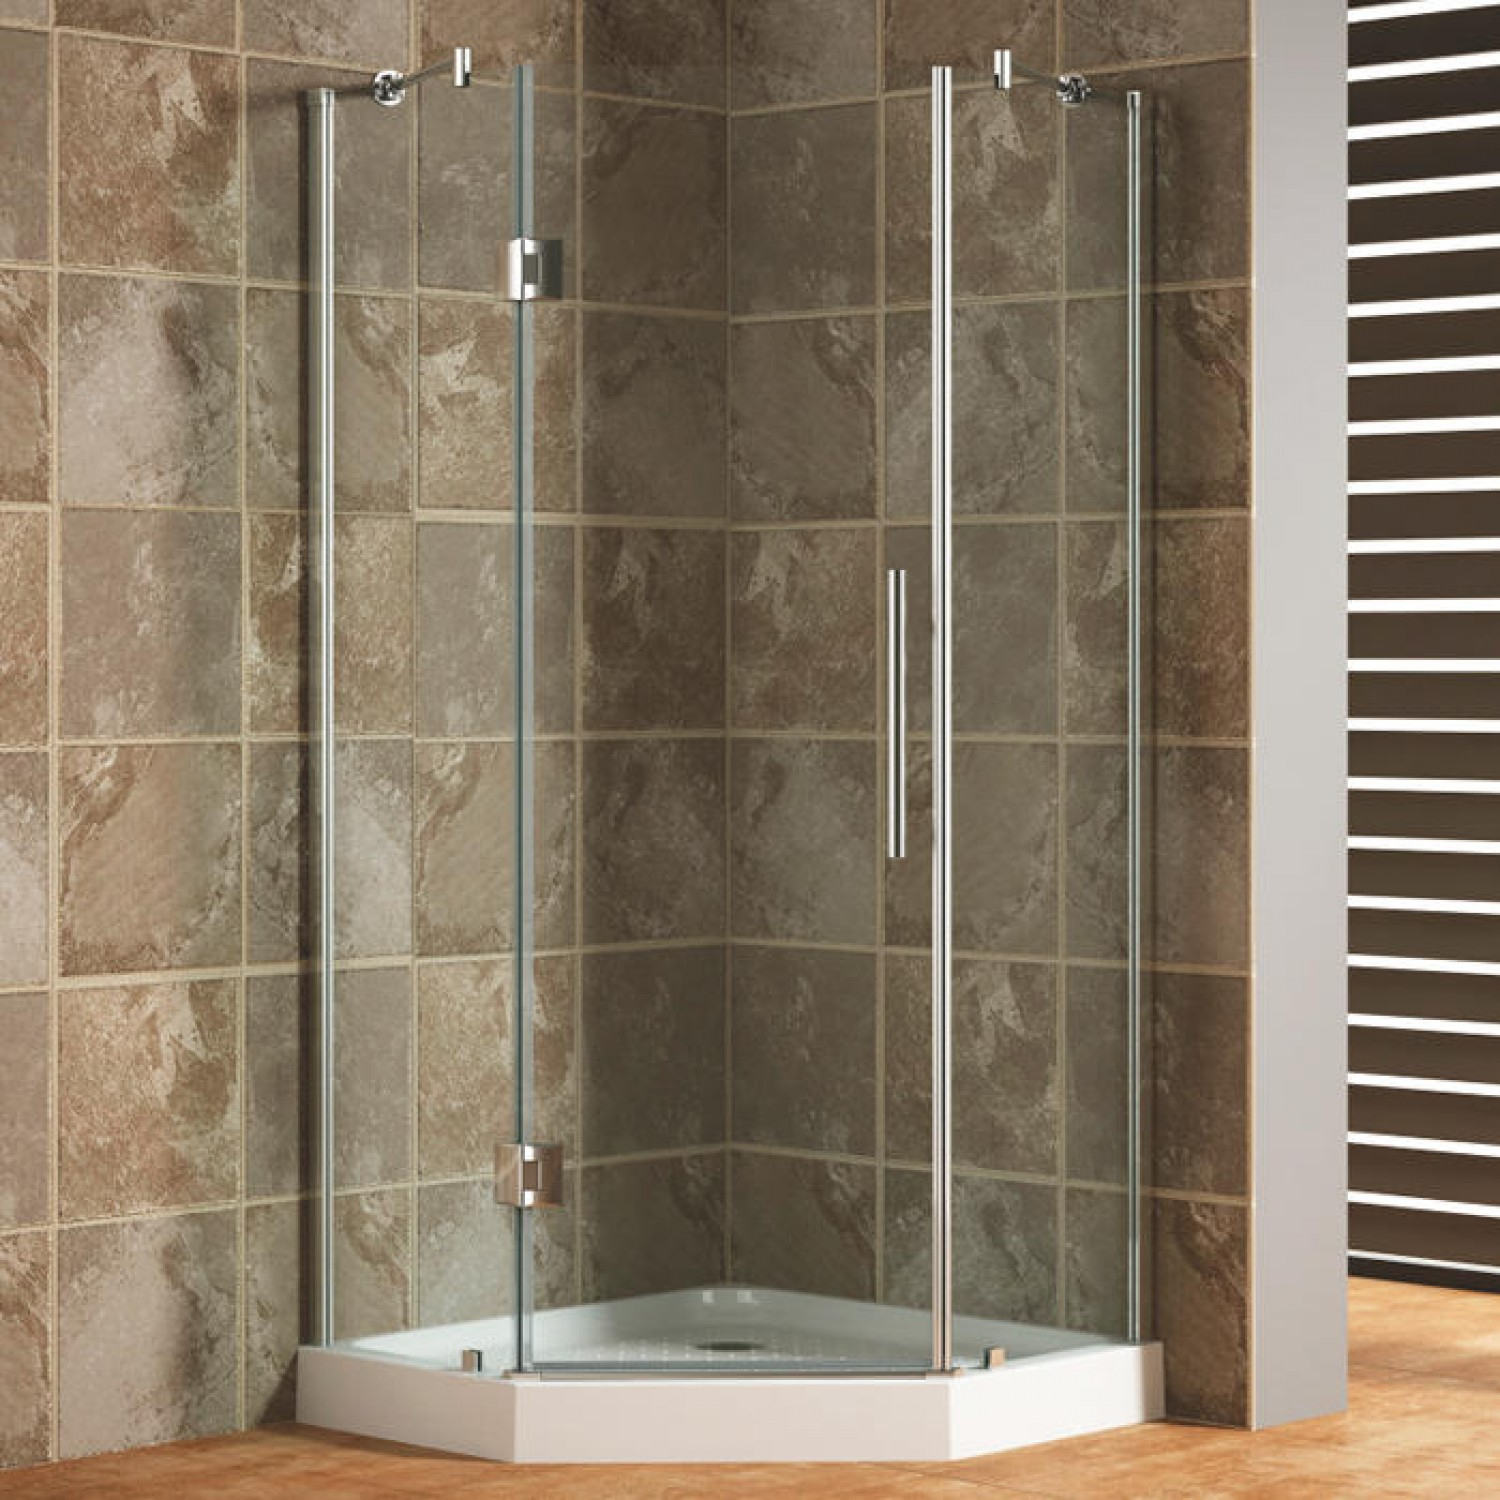 Tiled Corner Shower With Curtain • Shower Curtains Ideas